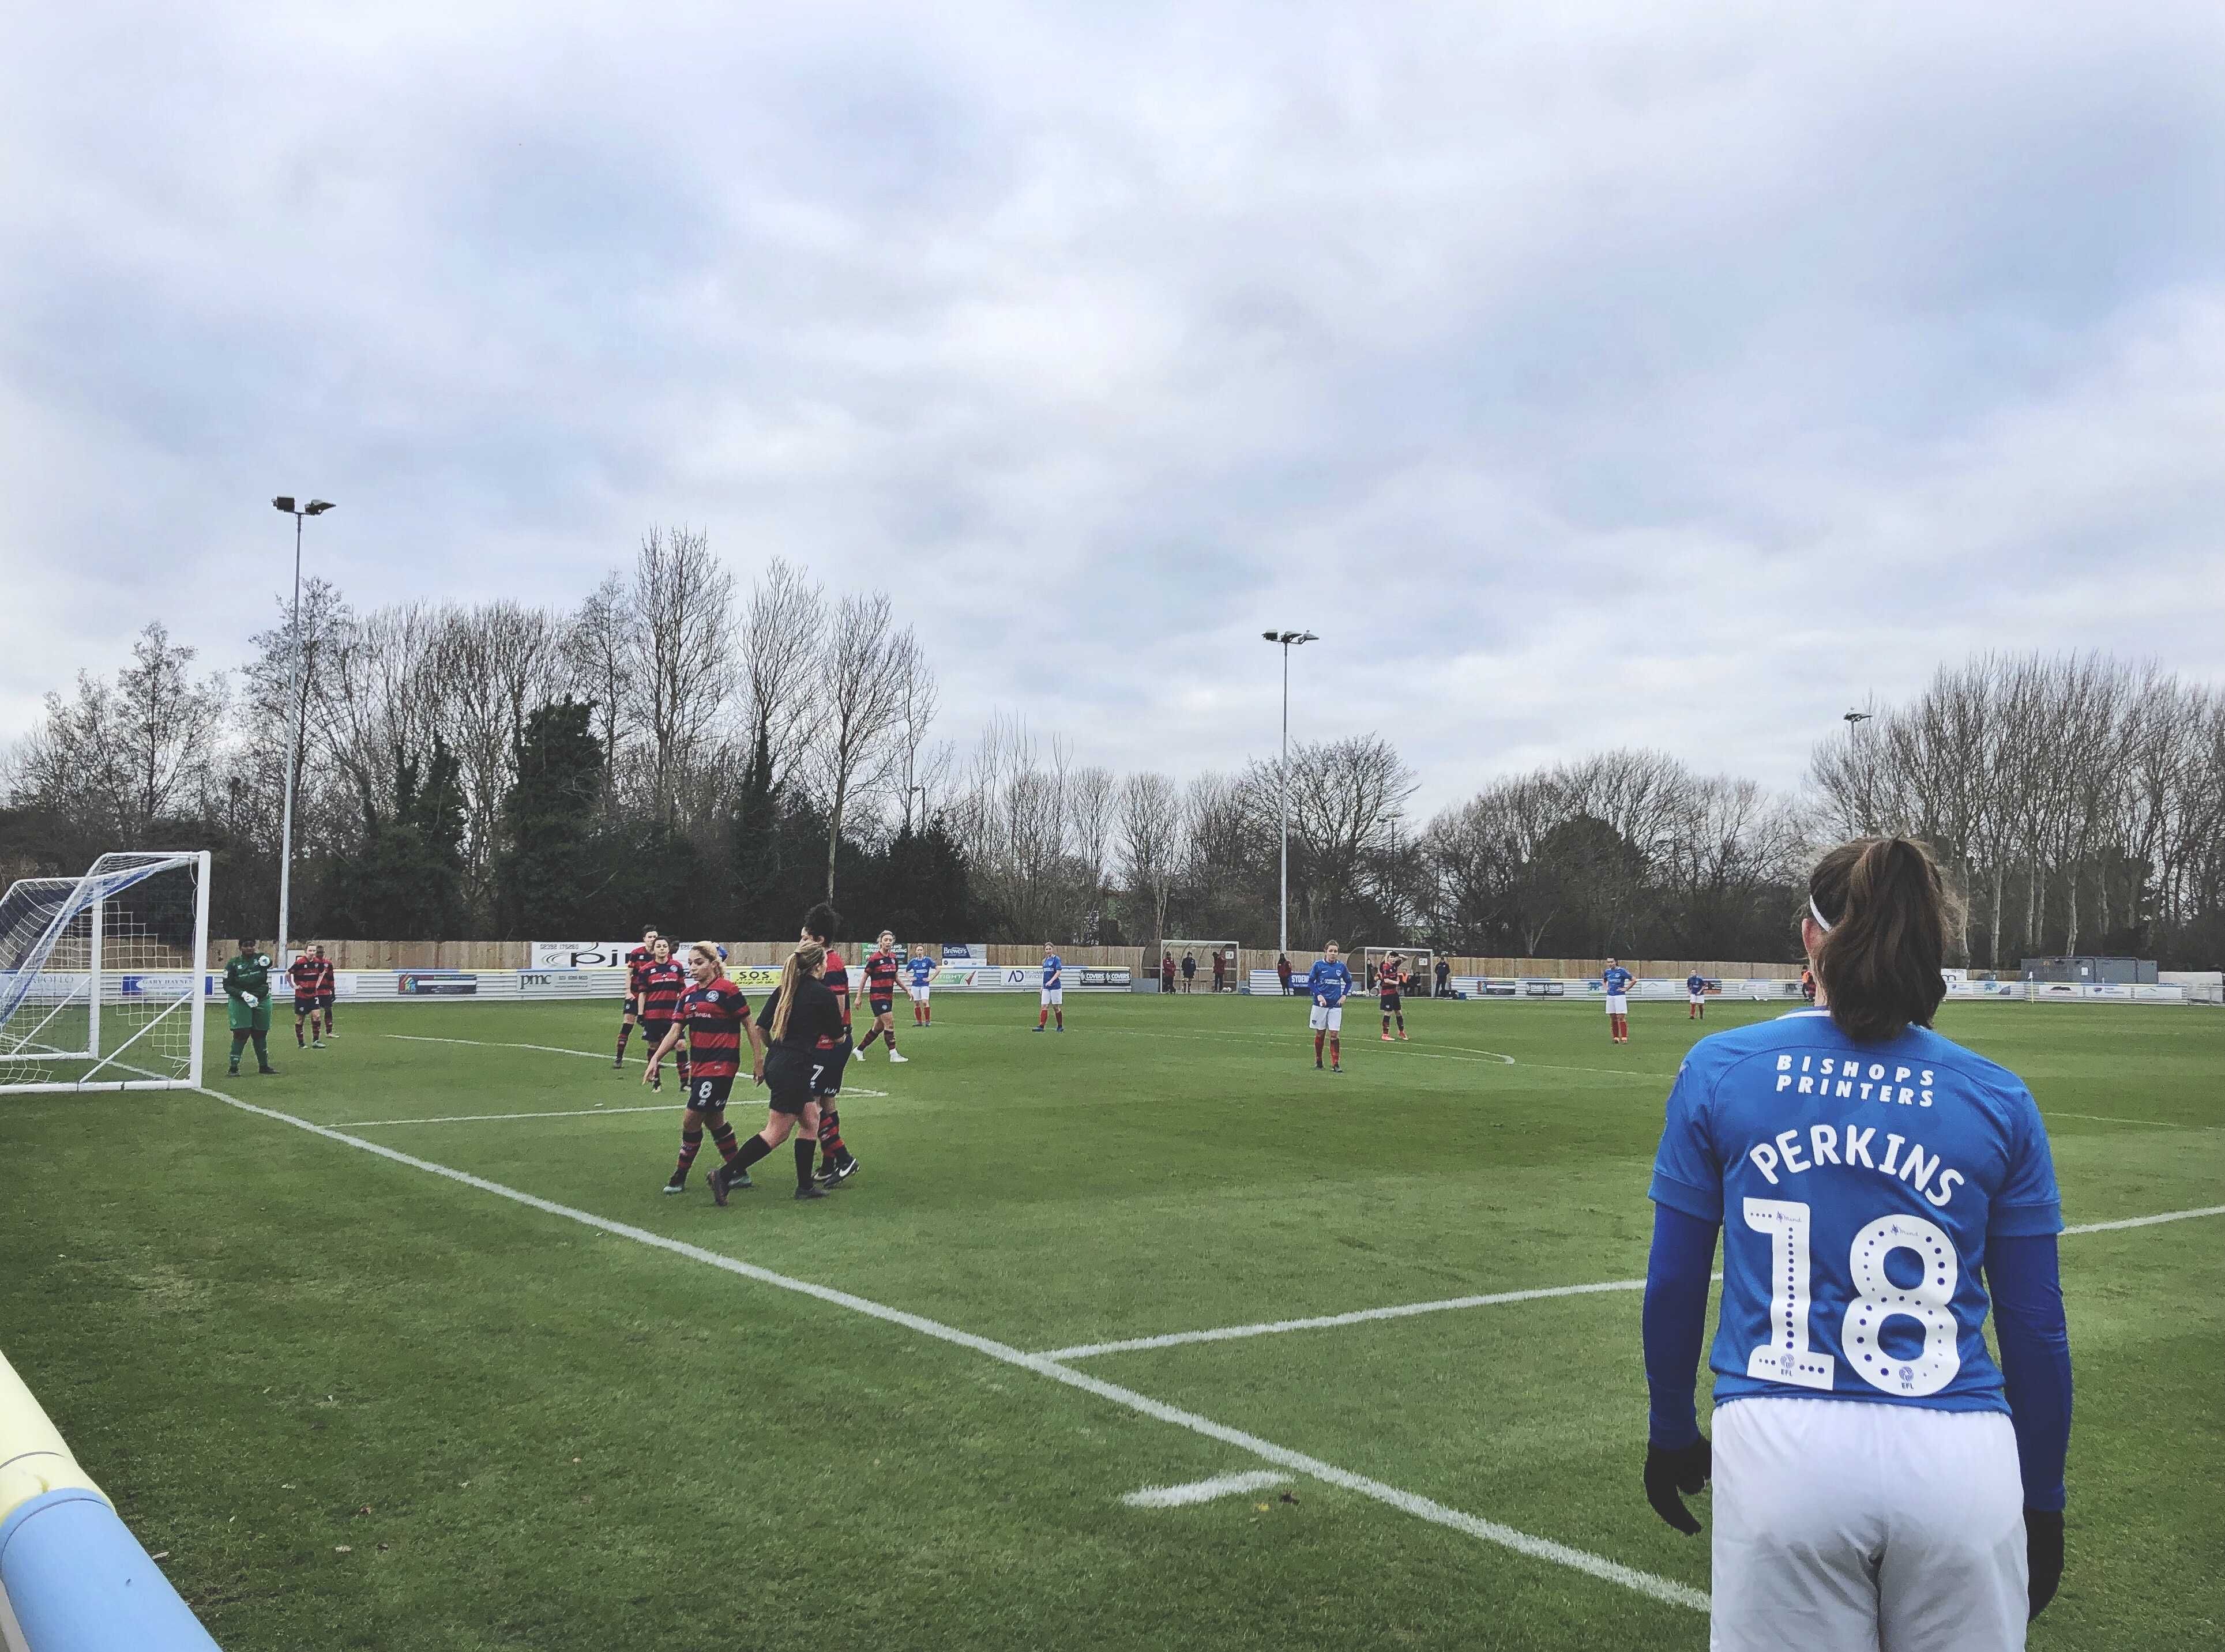 Carla Perkins prepares to take a free kick for Portsmouth Women.